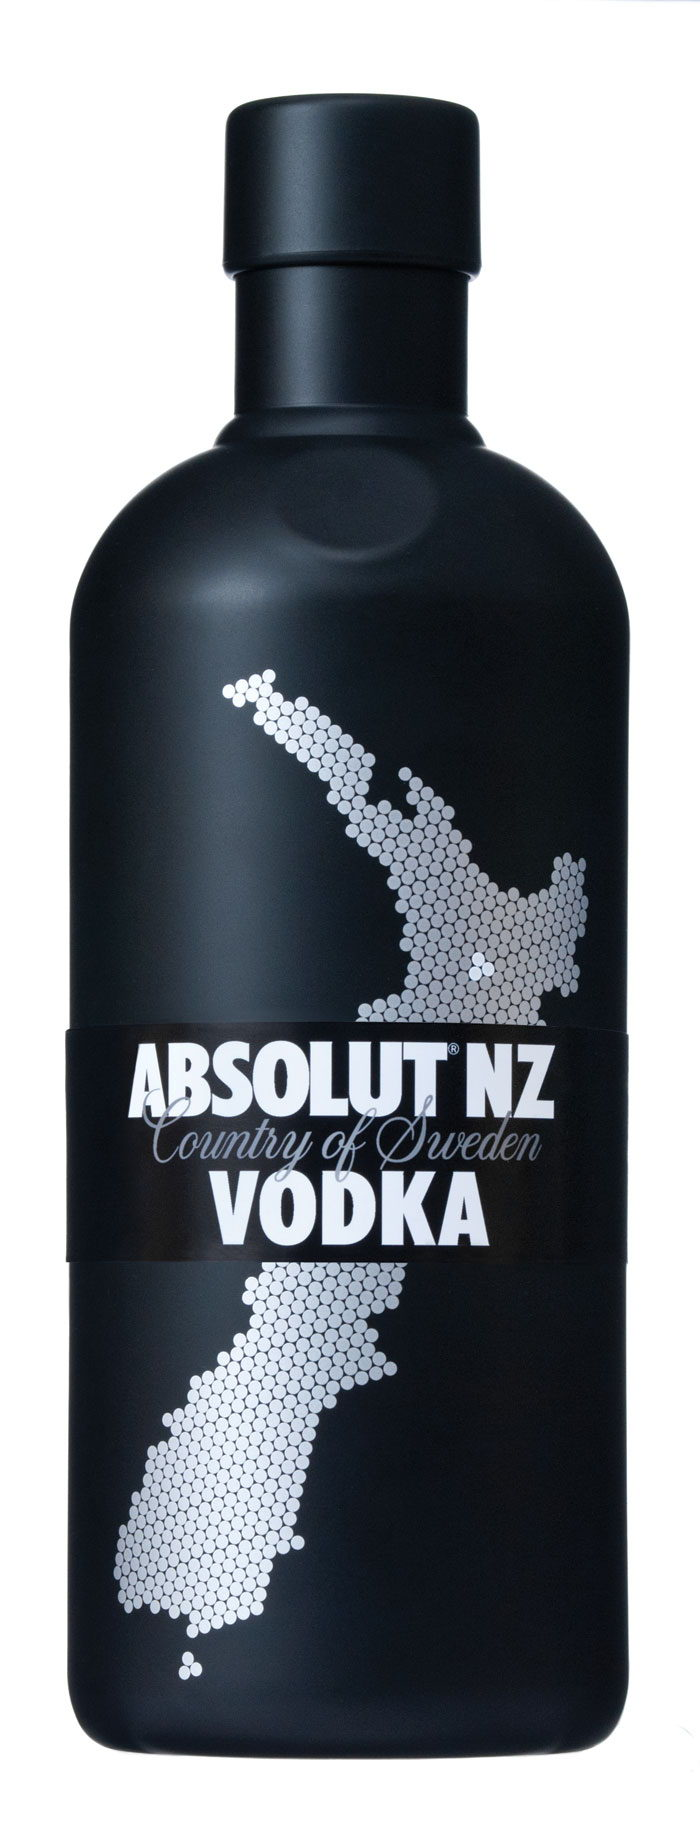 ABSOLUT NZ Limited Edition